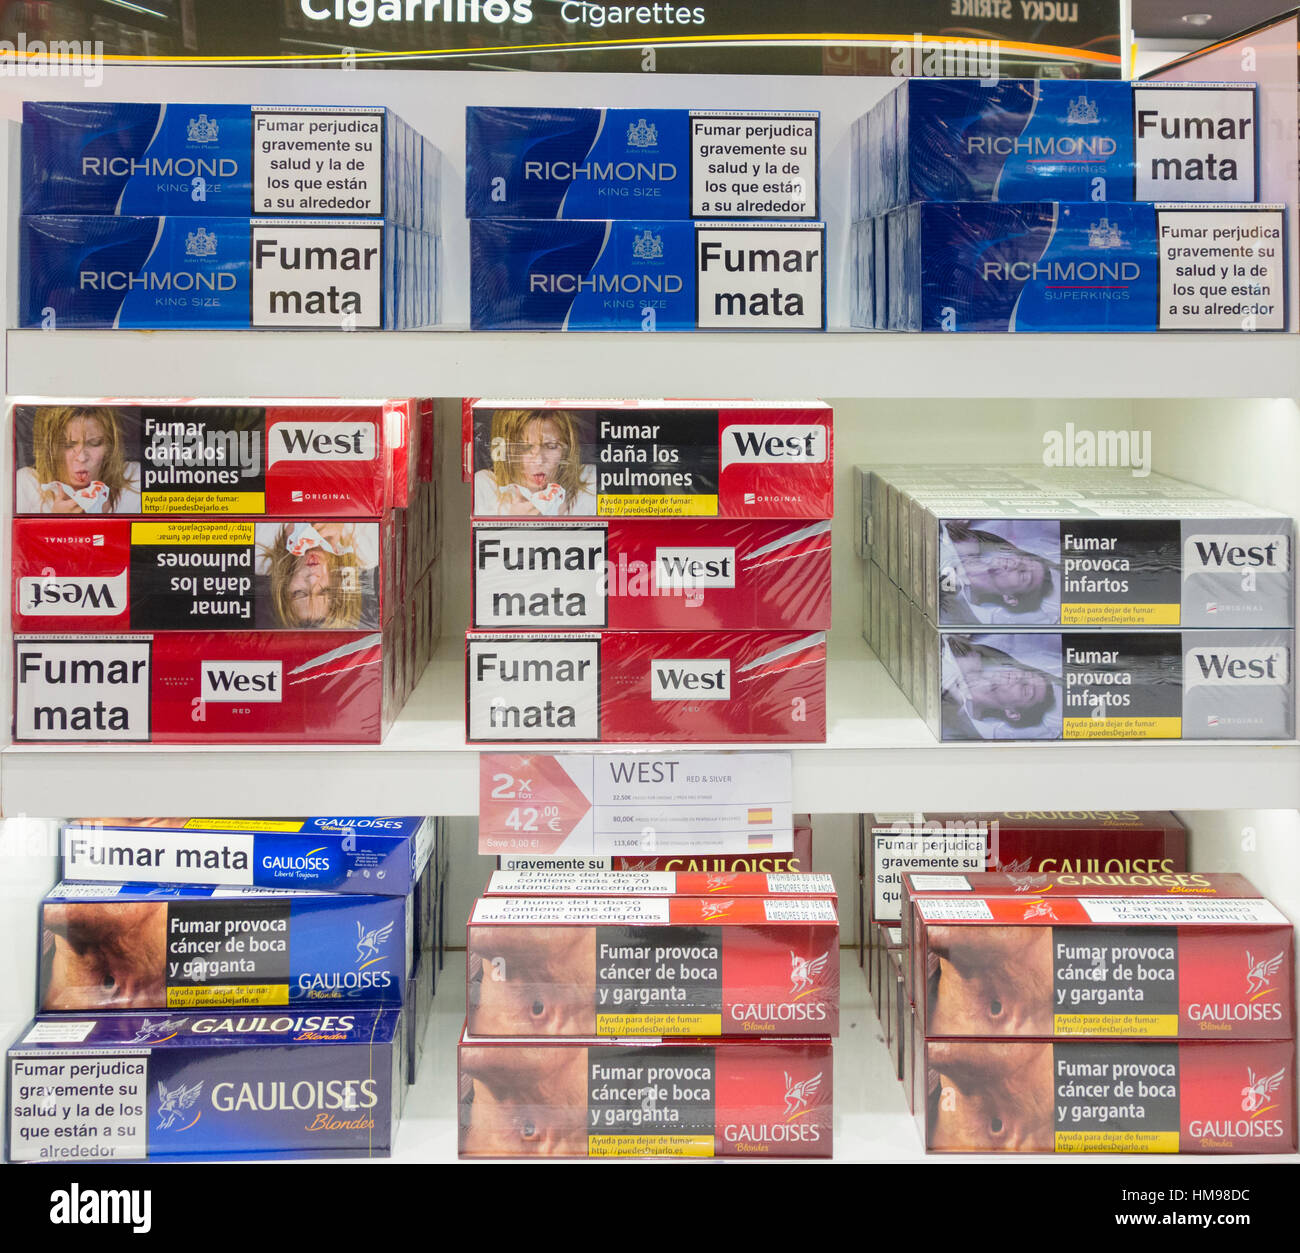 Cigarette prices in spain duty free vending machines selling cigarettes